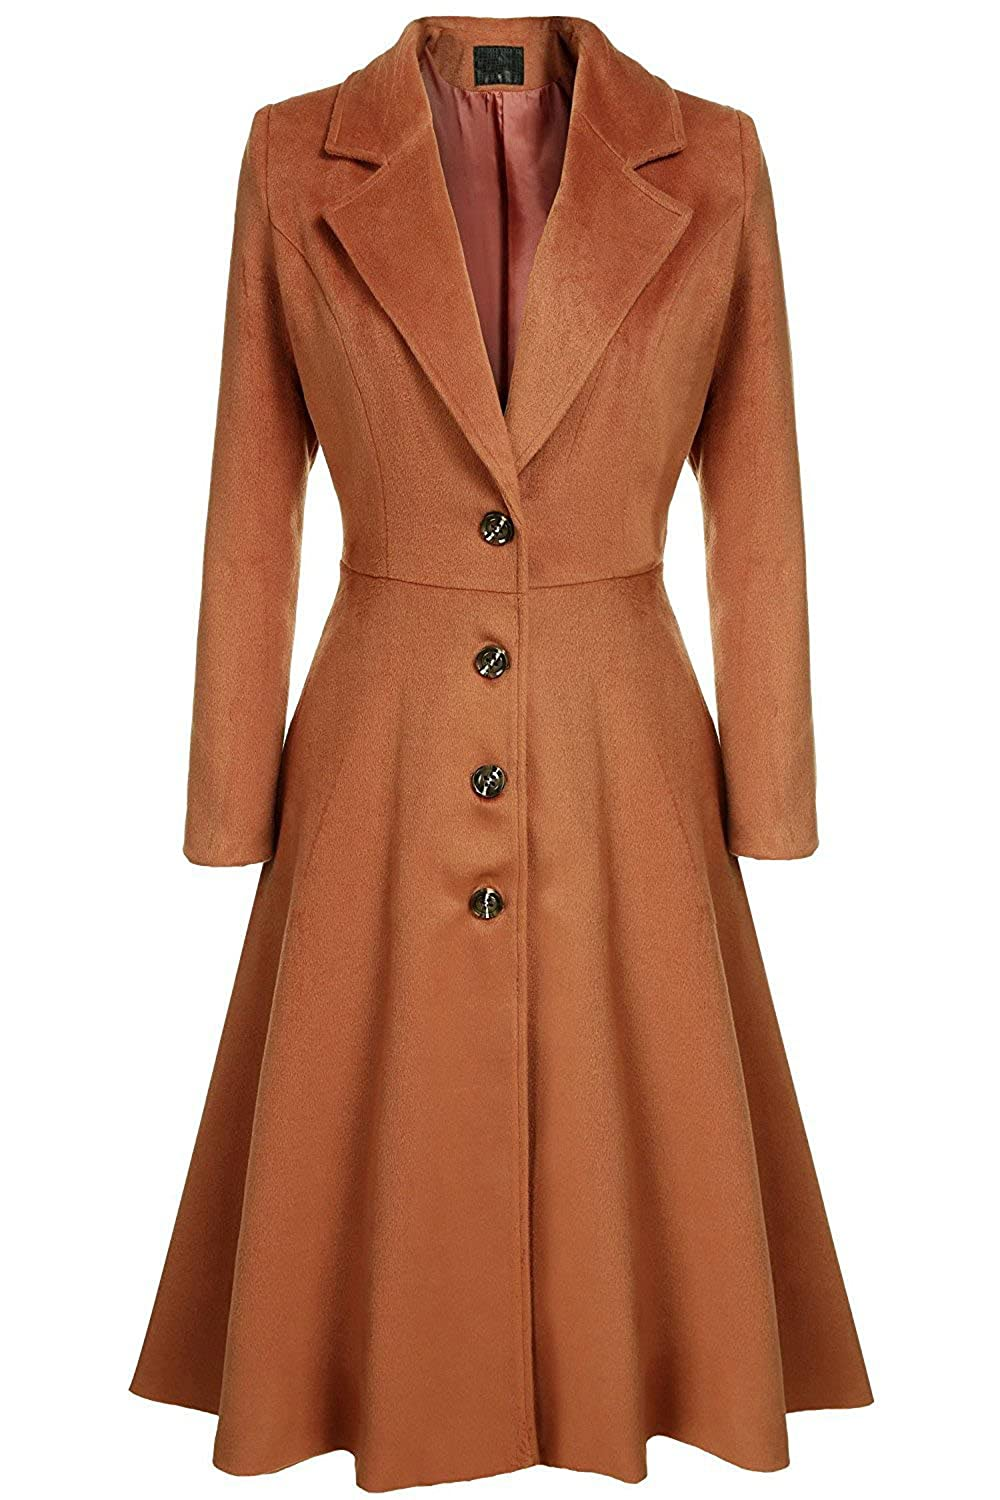 1950s Coats and Jackets History Elever Womens Casual Long Sleeve Turn-down collar A-line Flare Hem Wool Blended Dress Blazer Coats $70.99 AT vintagedancer.com